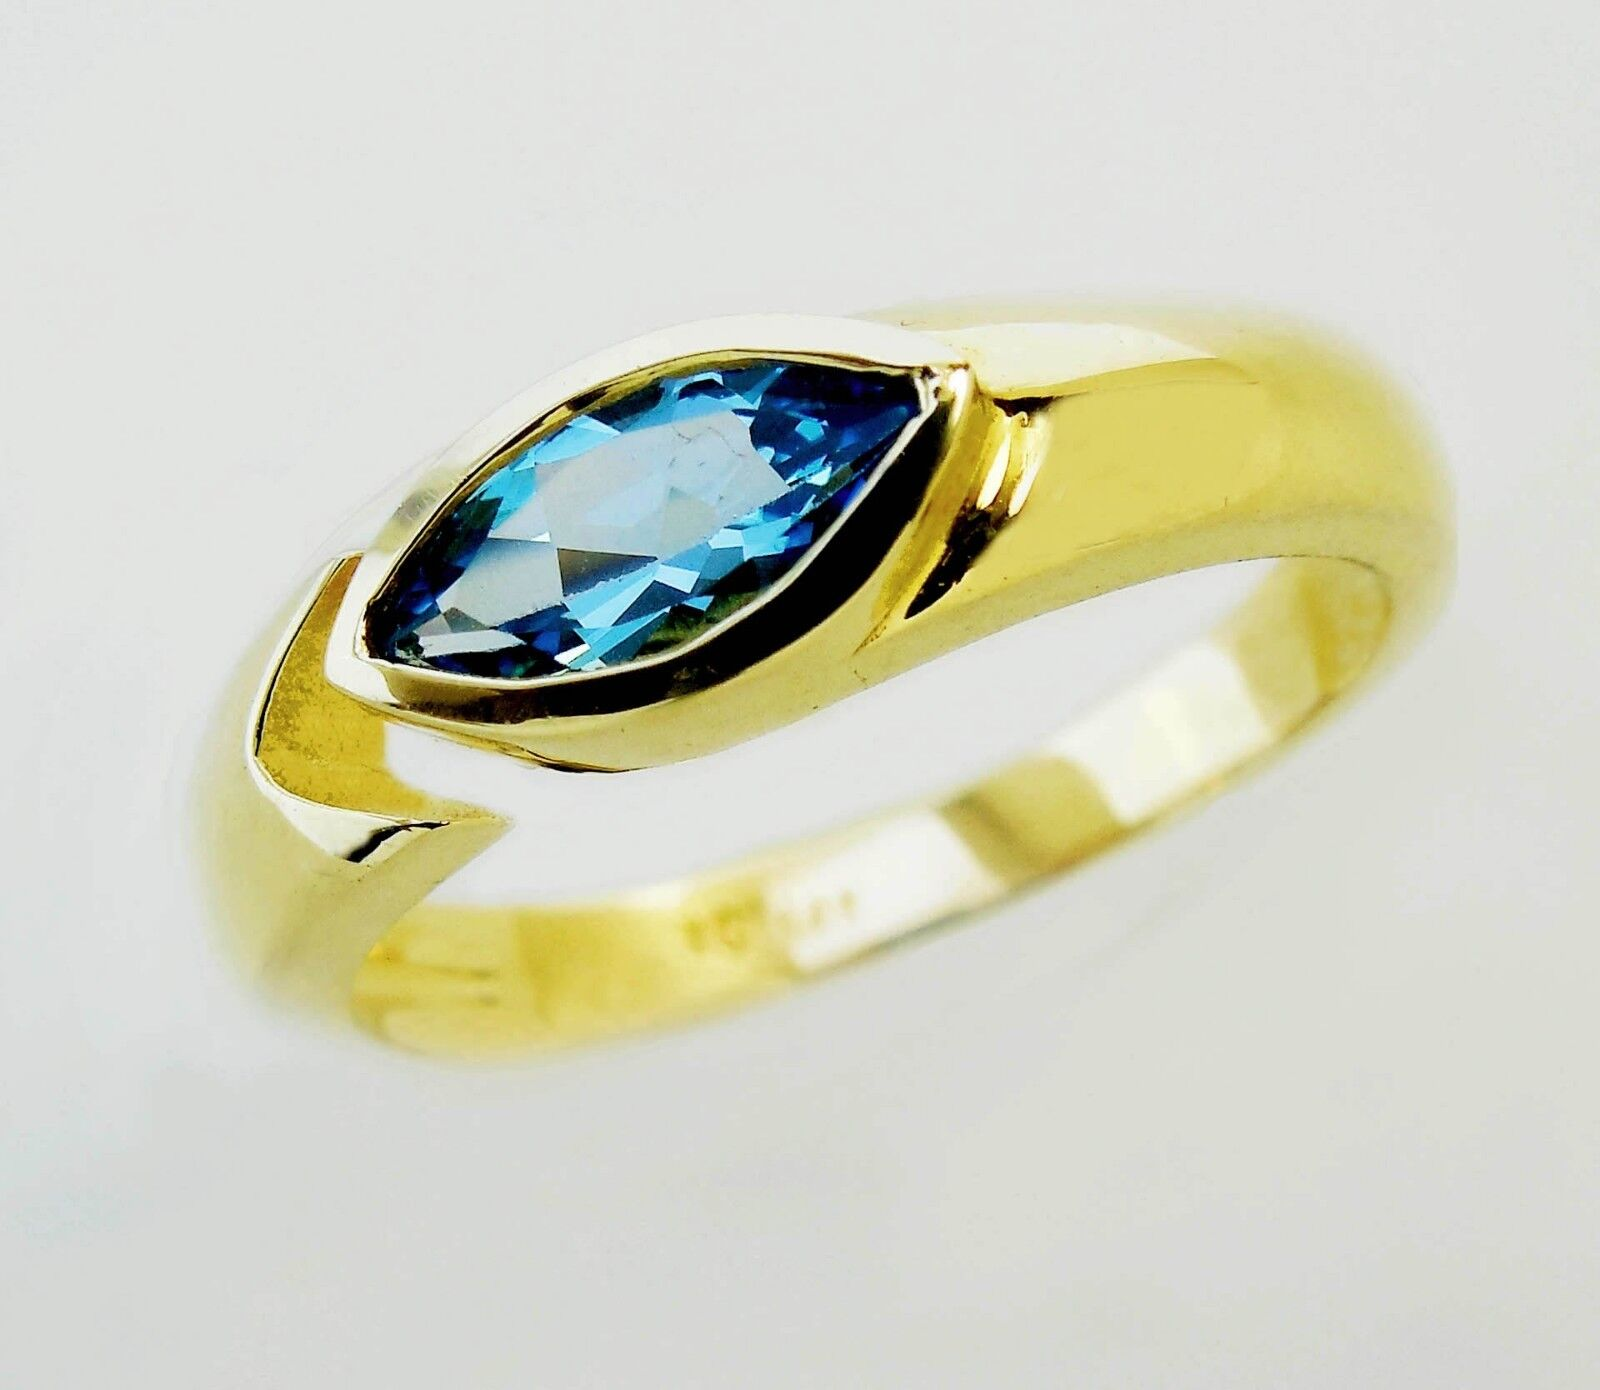 14KT YELLOW gold CHARMING LADIES blueE TOPAZ RING  27047R